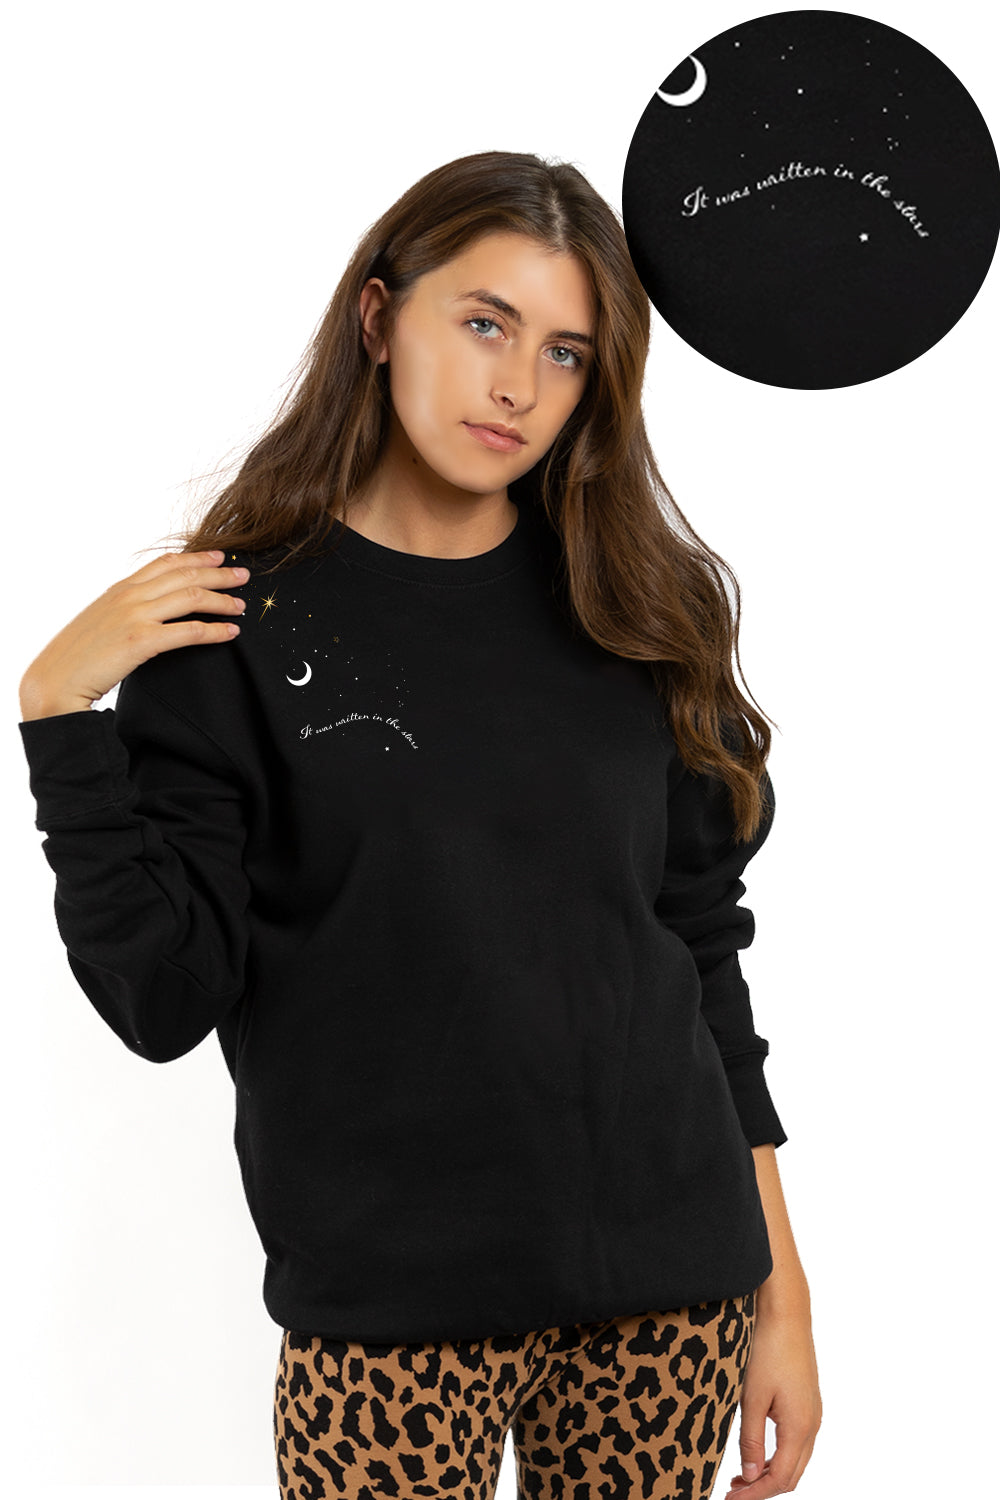 PRESLIE CREWNECK SWEATSHIRT - Horoscopes